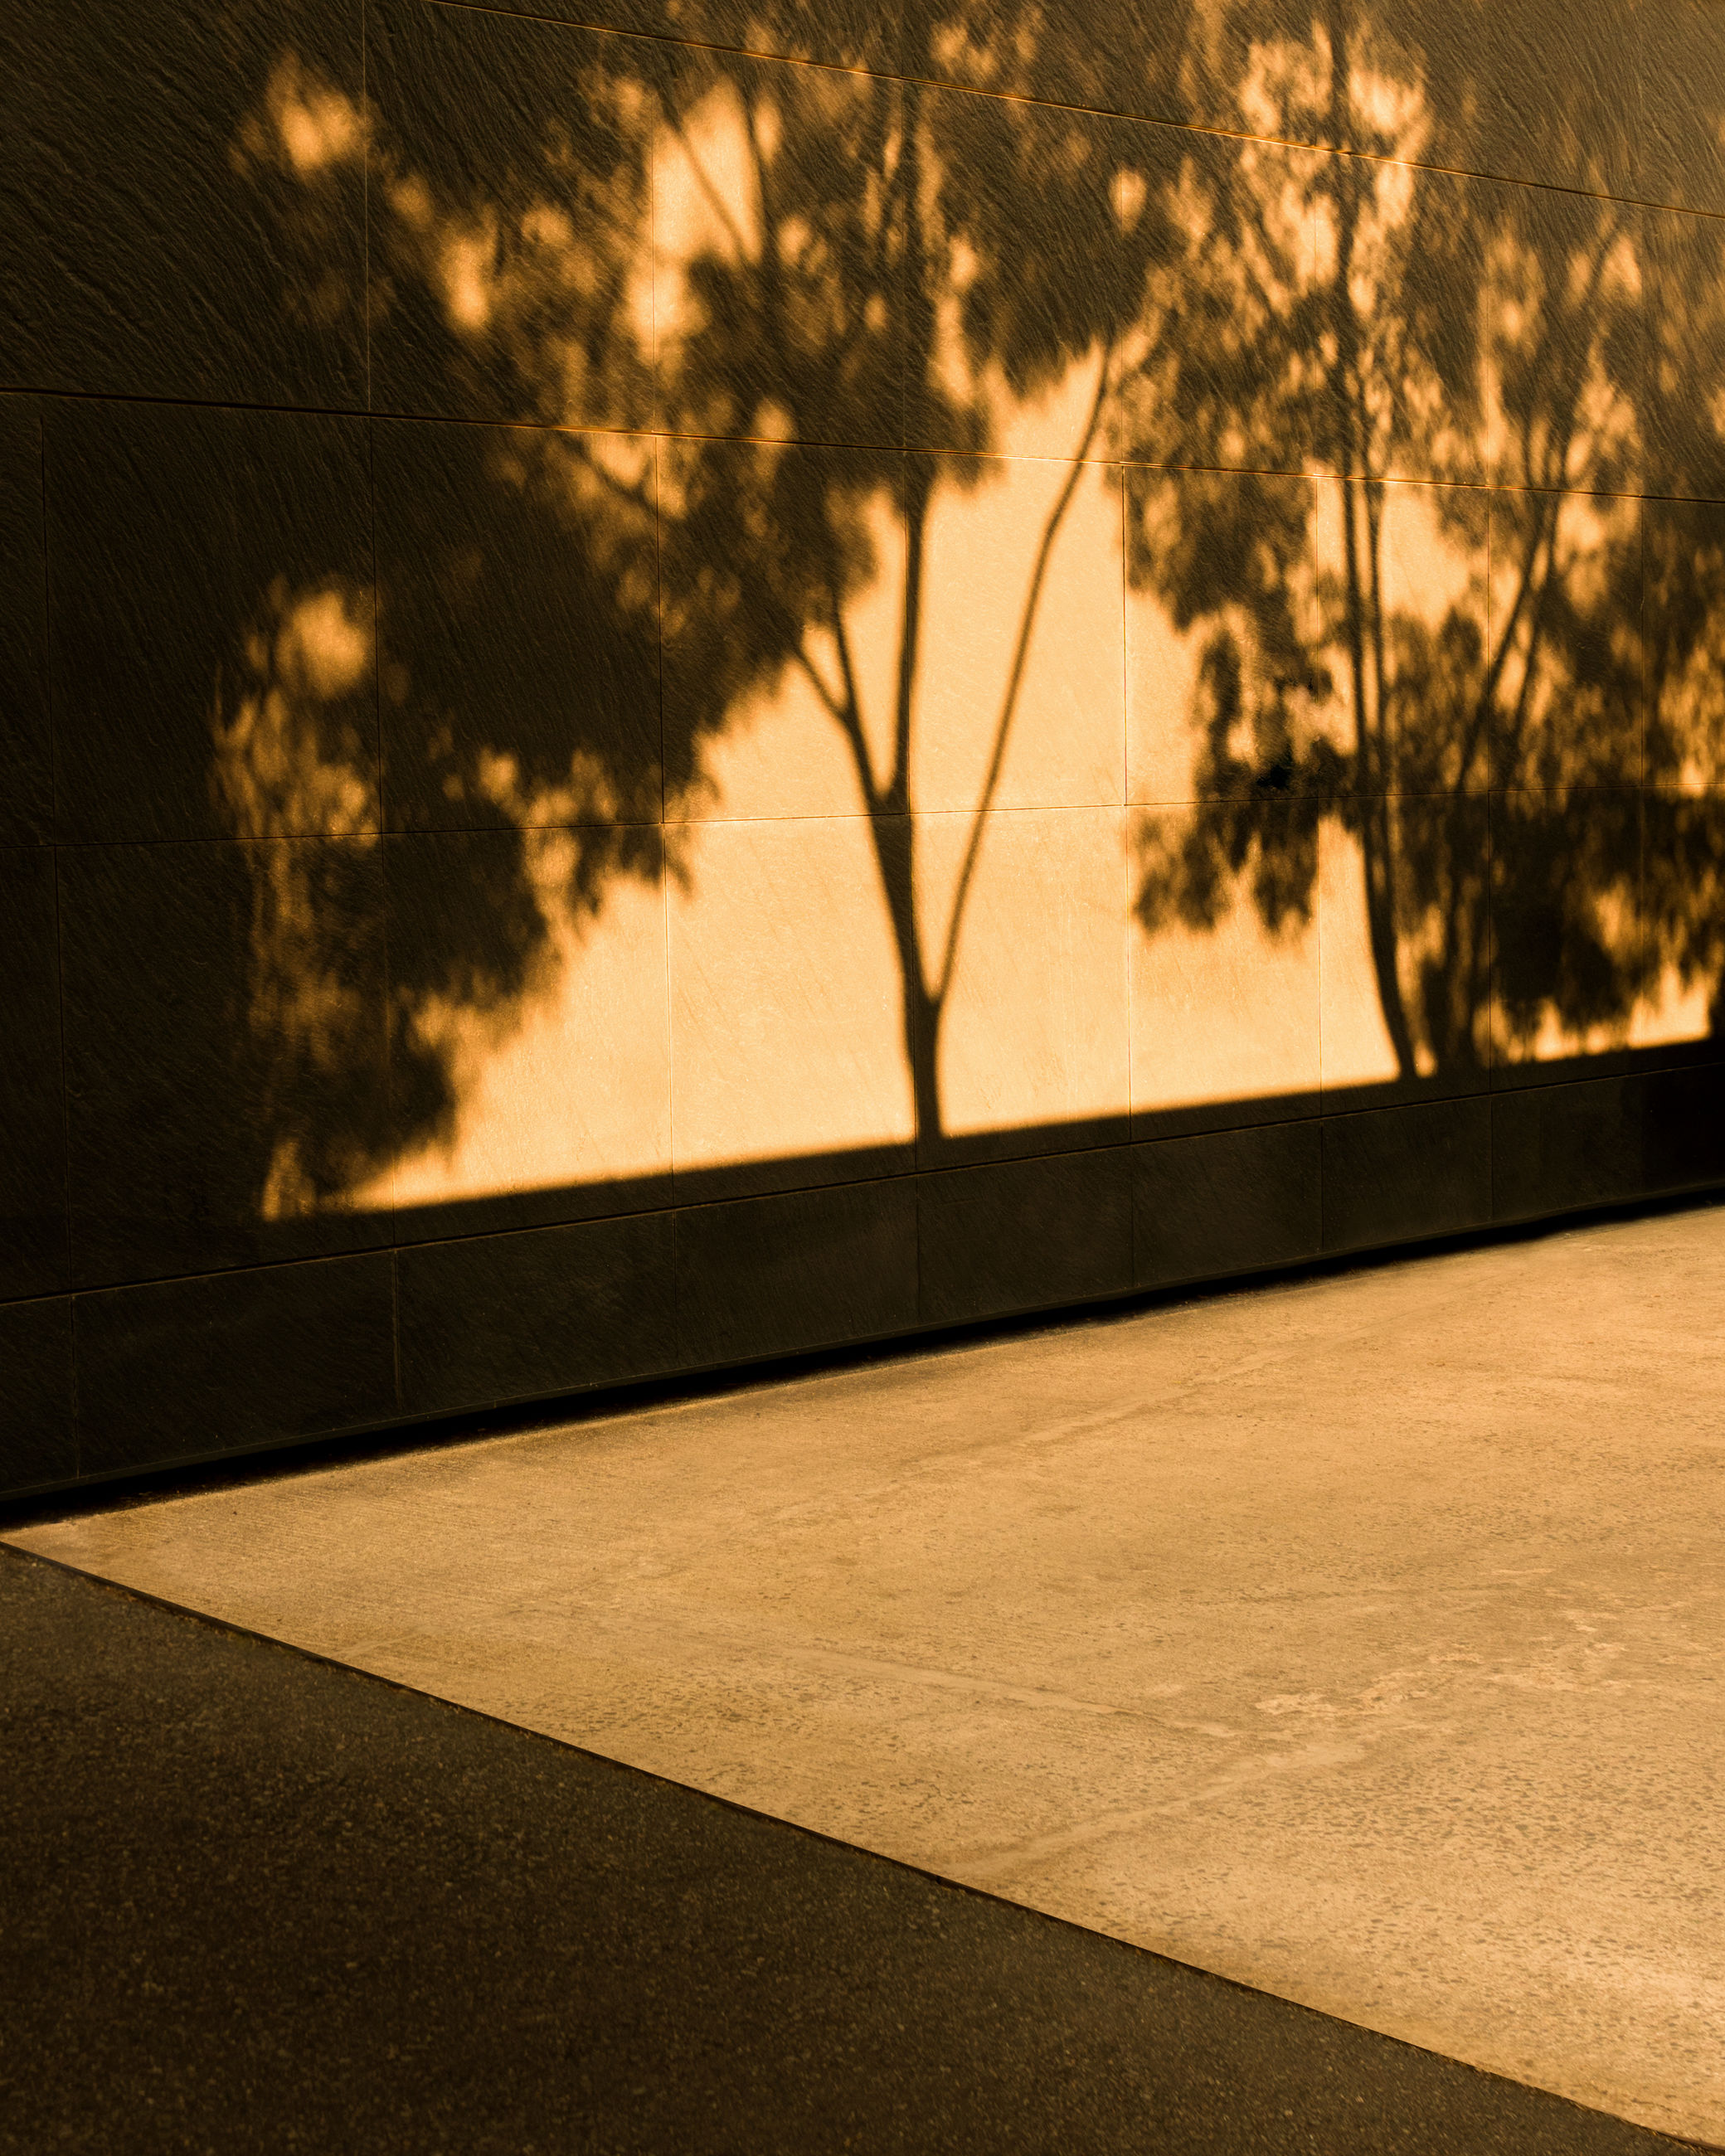 tree, plant, no people, nature, architecture, wall, outdoors, built structure, sunlight, absence, silhouette, sunset, wall - building feature, shadow, sky, building exterior, footpath, window, focus on foreground, empty